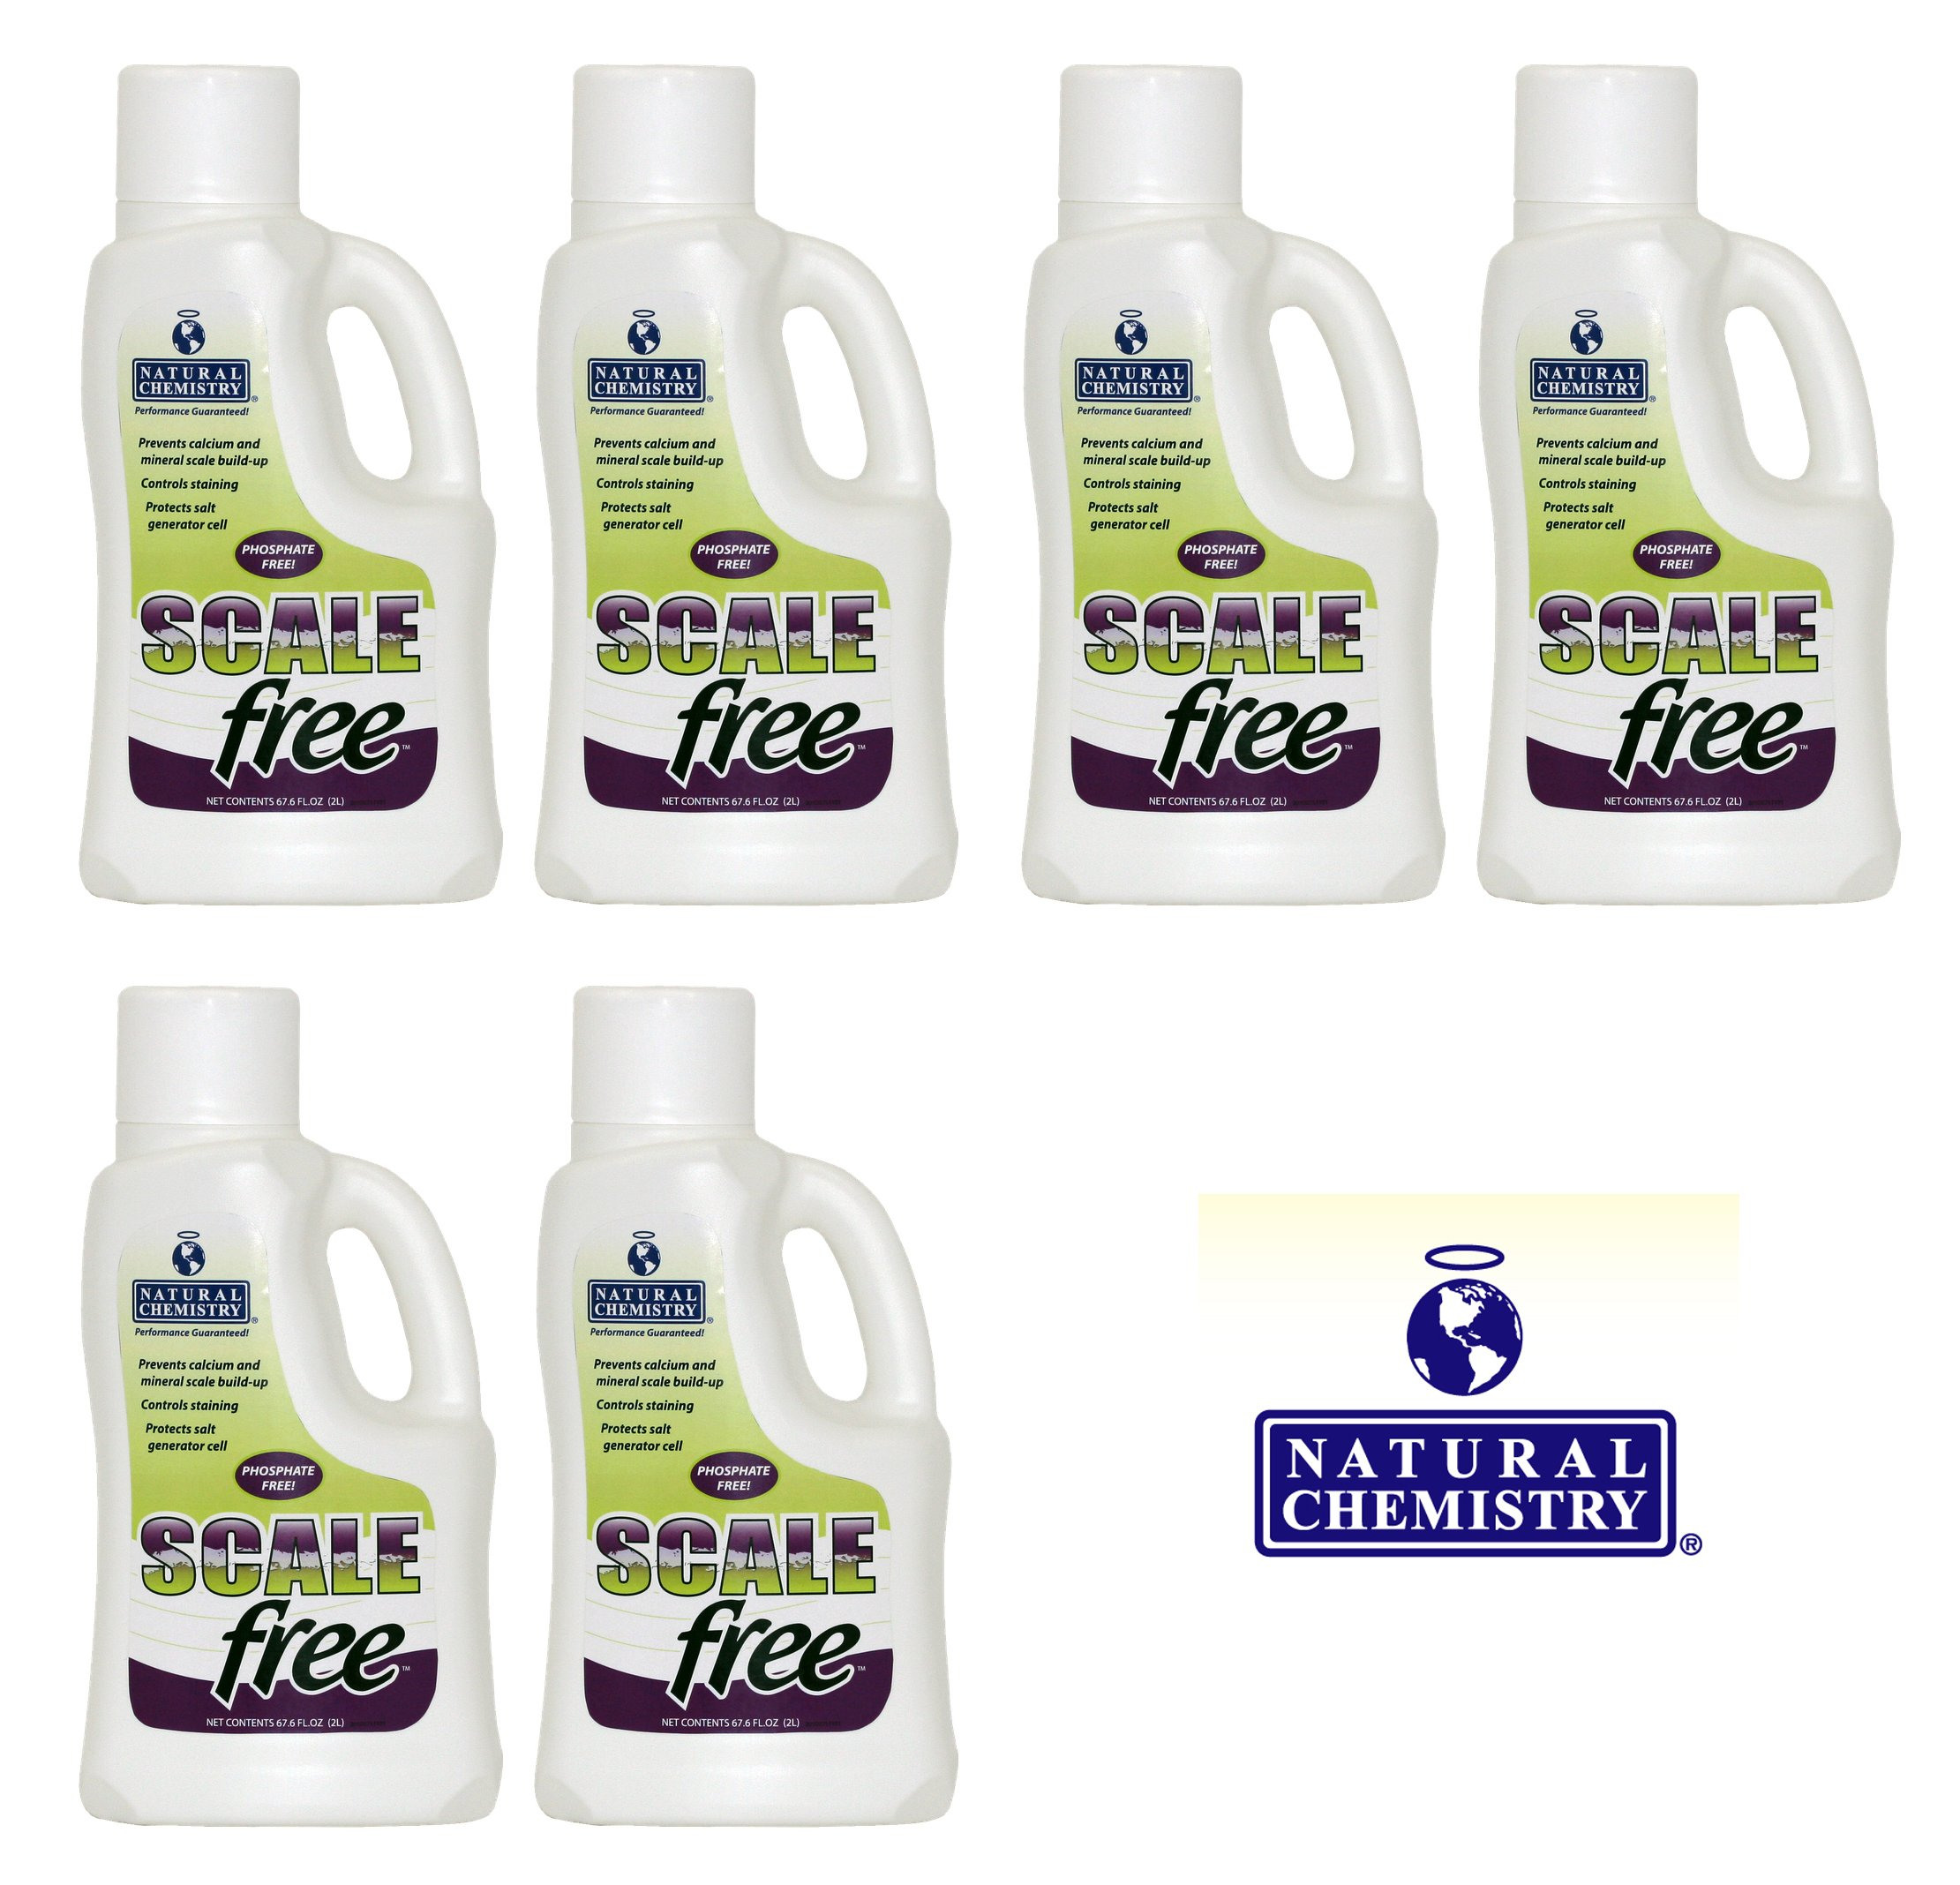 Natural Chemistry 6 07511 Spa Swimming Pool SCALEfree Mineral Stain Prevent - 2L by Natural Chemistry